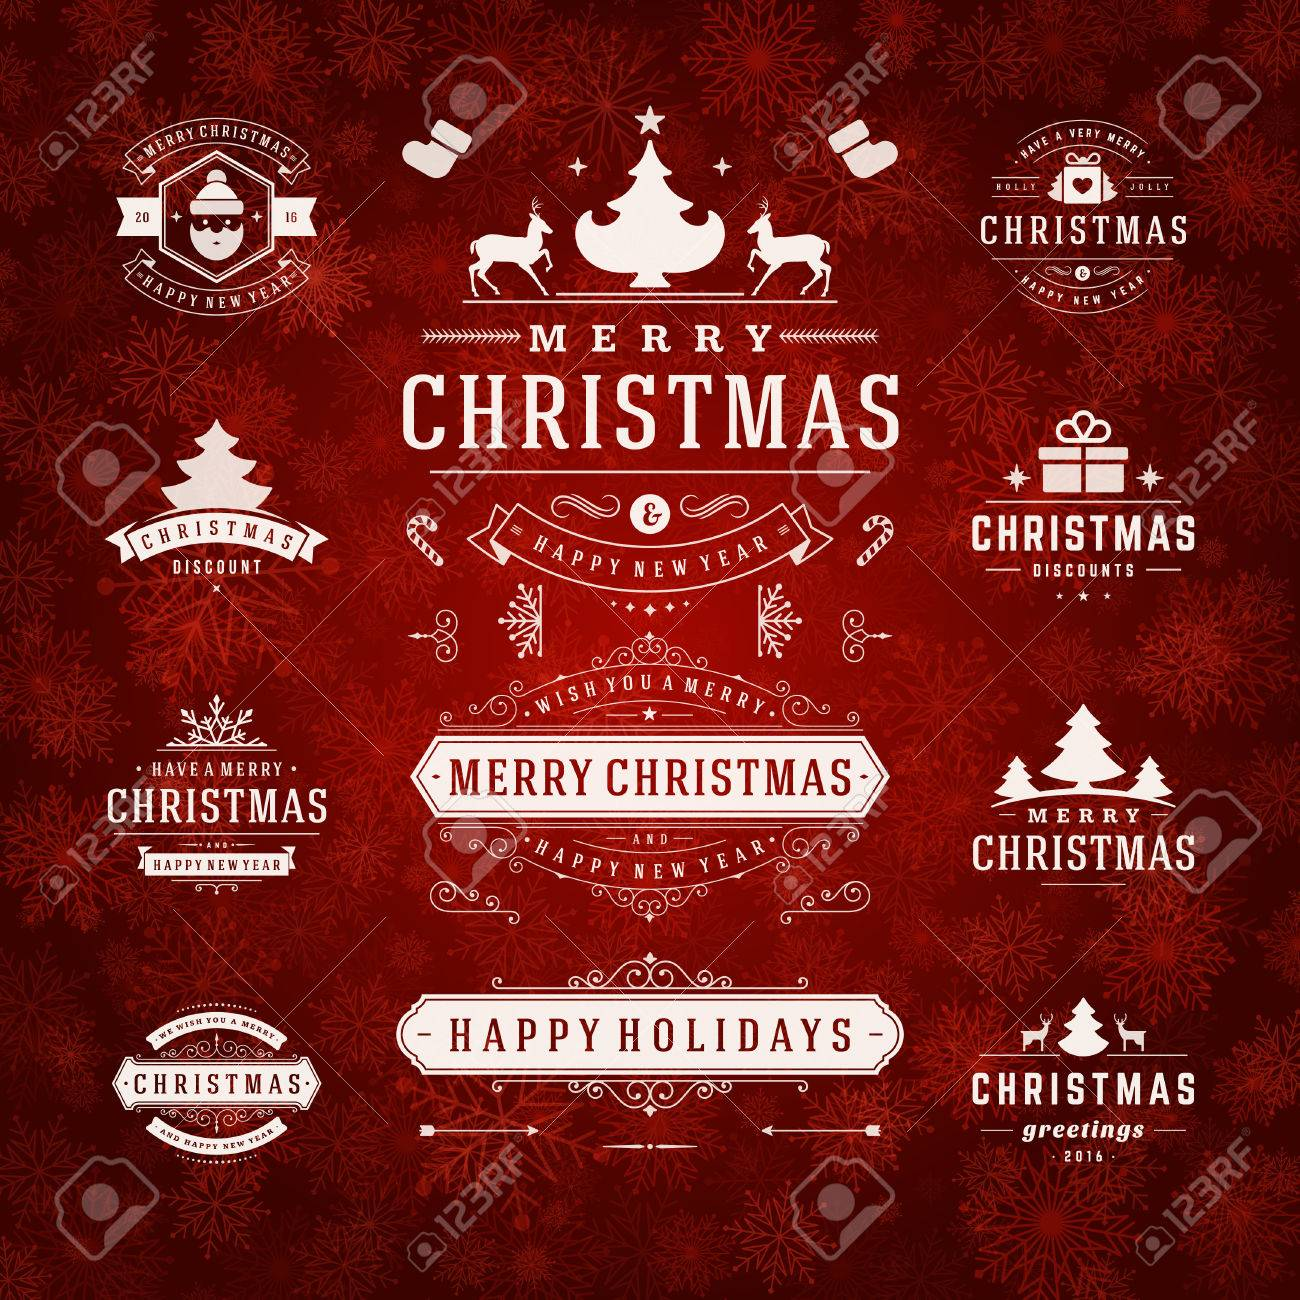 Christmas Decorations Vector Design Elements. Typographic elements, Symbols, Icons, Vintage Labels, Badges, Frames, Ornaments set. Flourishes calligraphic. Merry Christmas and Happy Holidays wishes. - 46920531